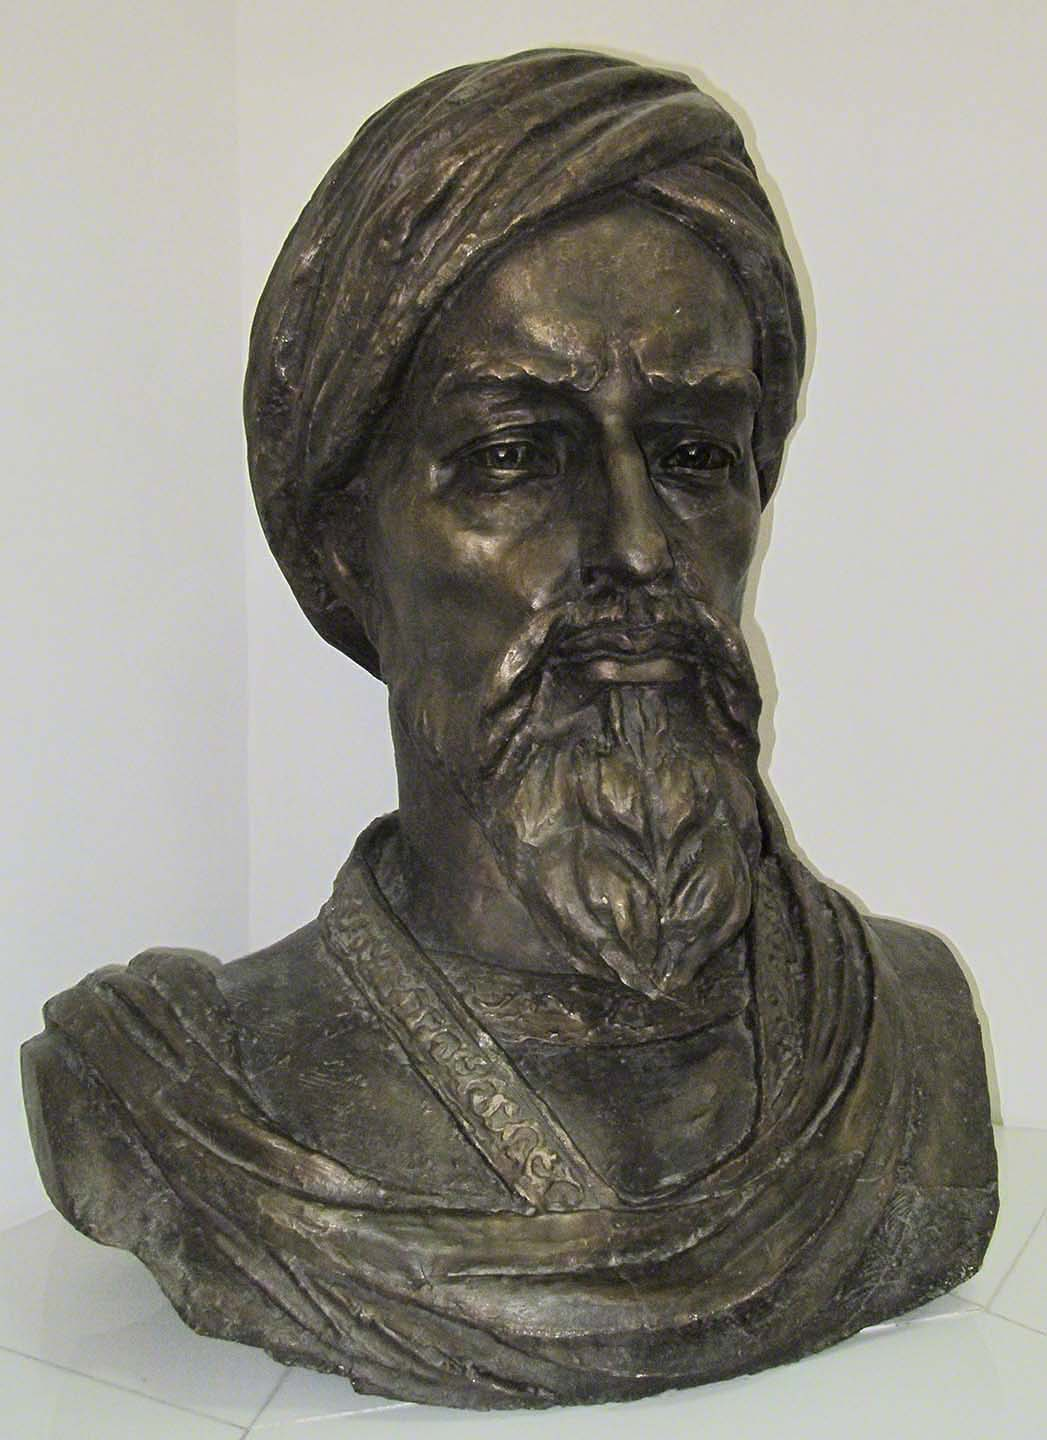 avicenna ibn sina essay A glance through the lenses of science: life and accomplishments of ibn sina sometimes (our desperate struggle for) the advancement in our goals can leave.